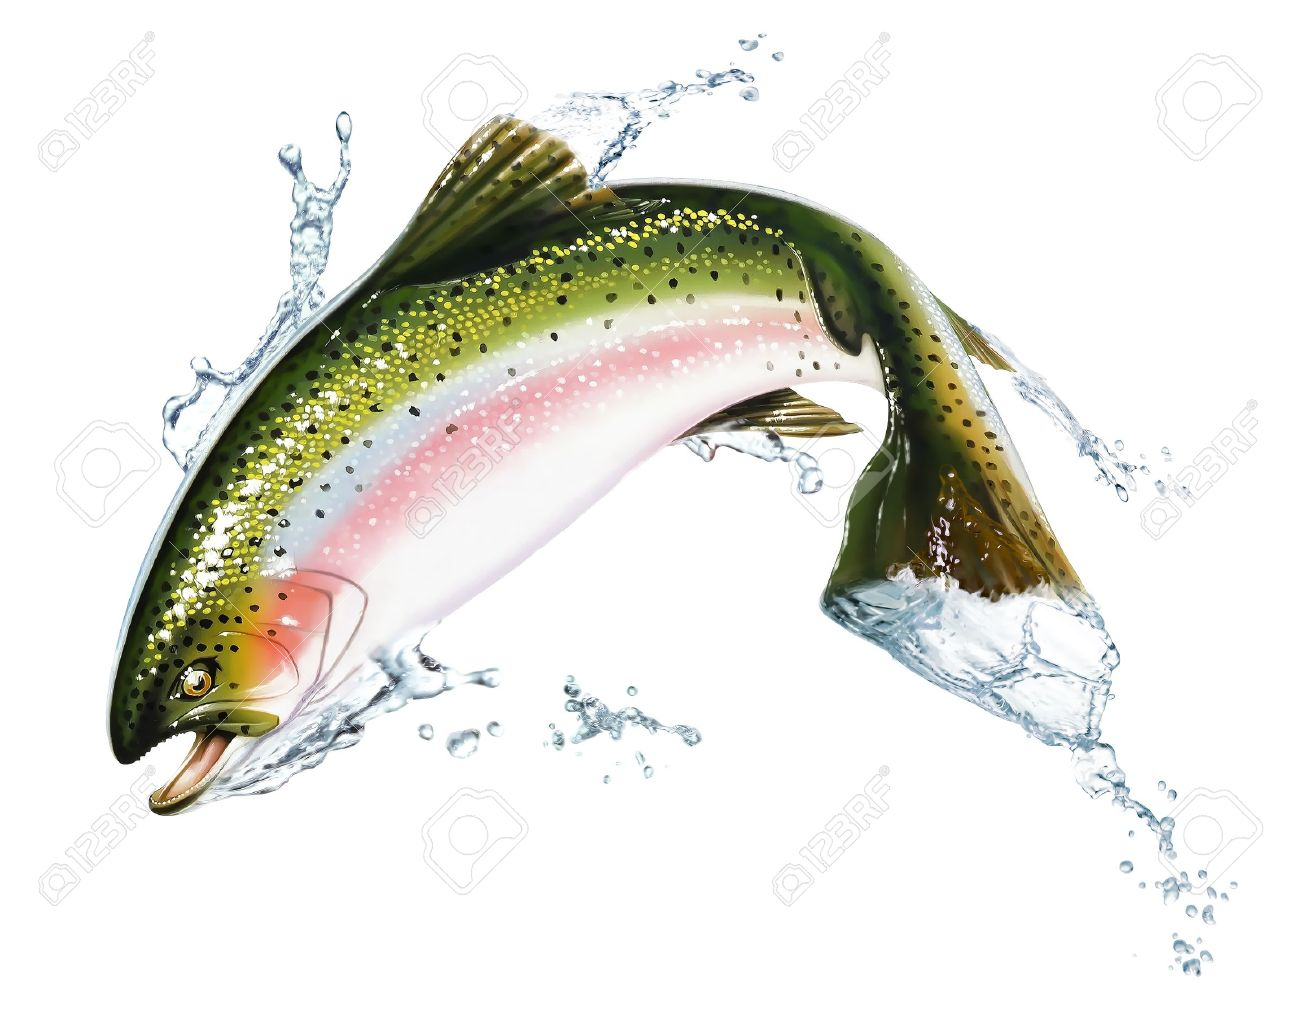 Freshwater fish jumping - Fresh Water Fish Fish Jumping Out Of The Water With Some Splashes Photorealistic